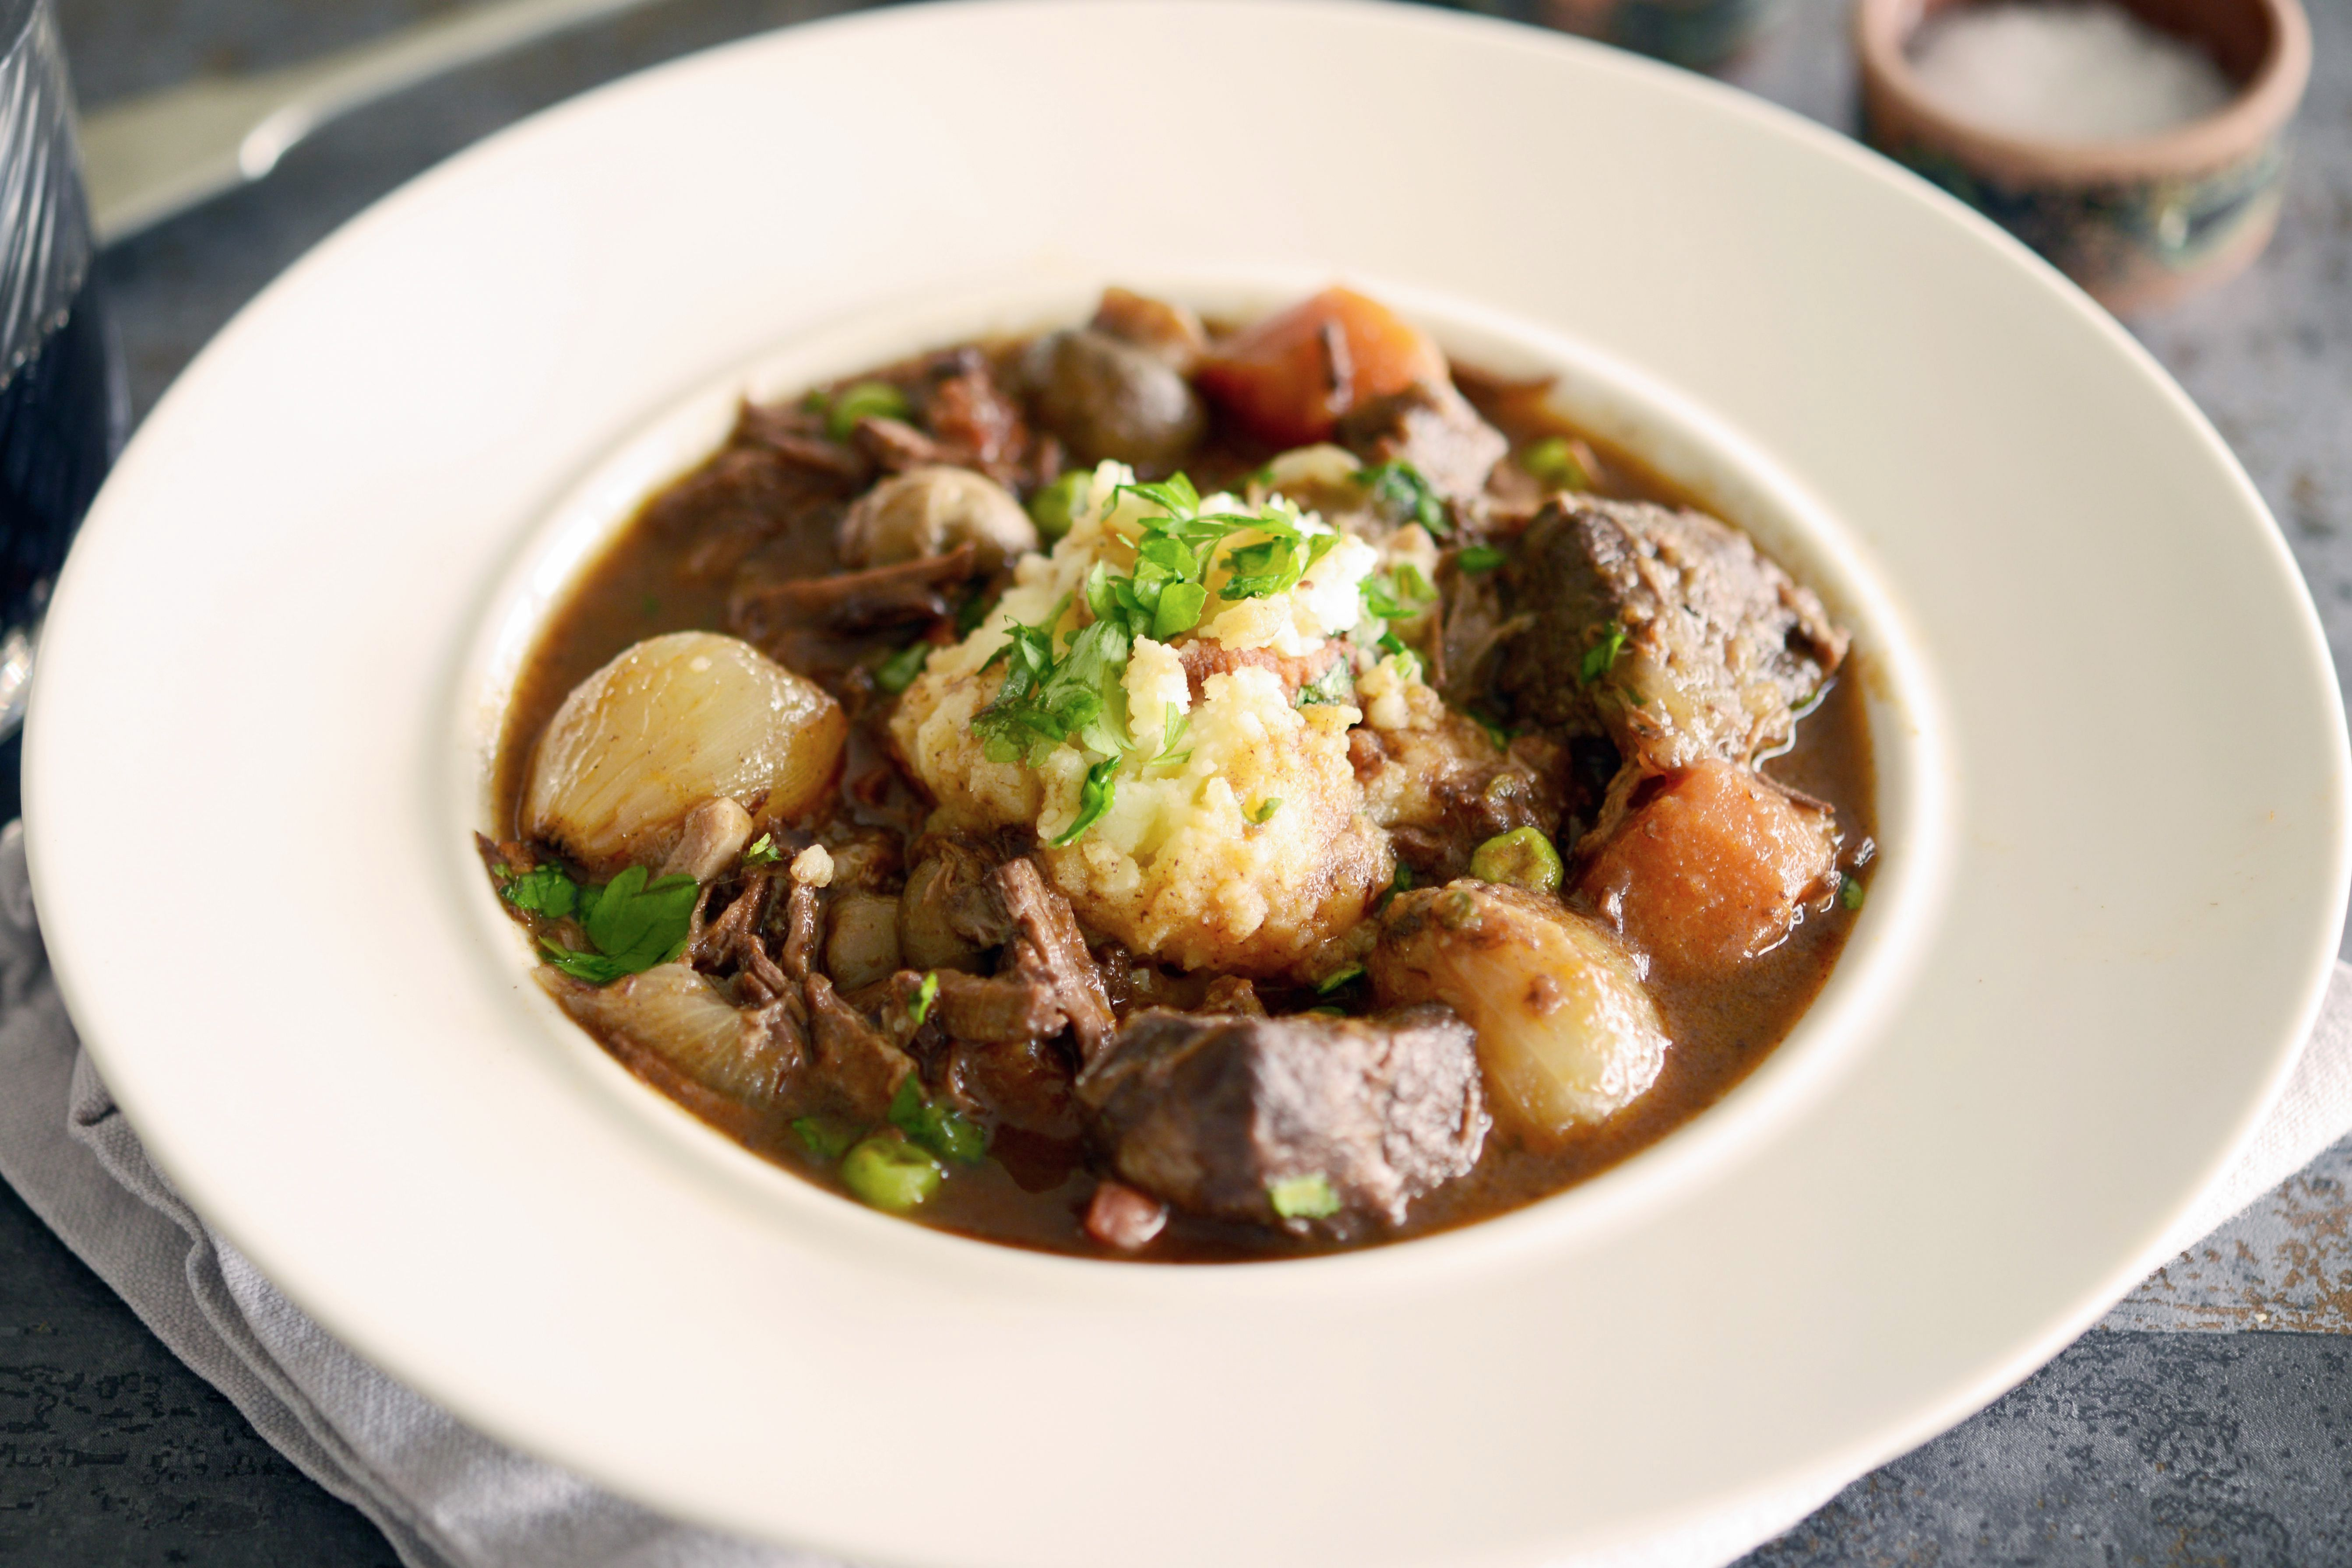 A Classic French Beef Bourguignon Is the Hearty Winter Stew We All Need